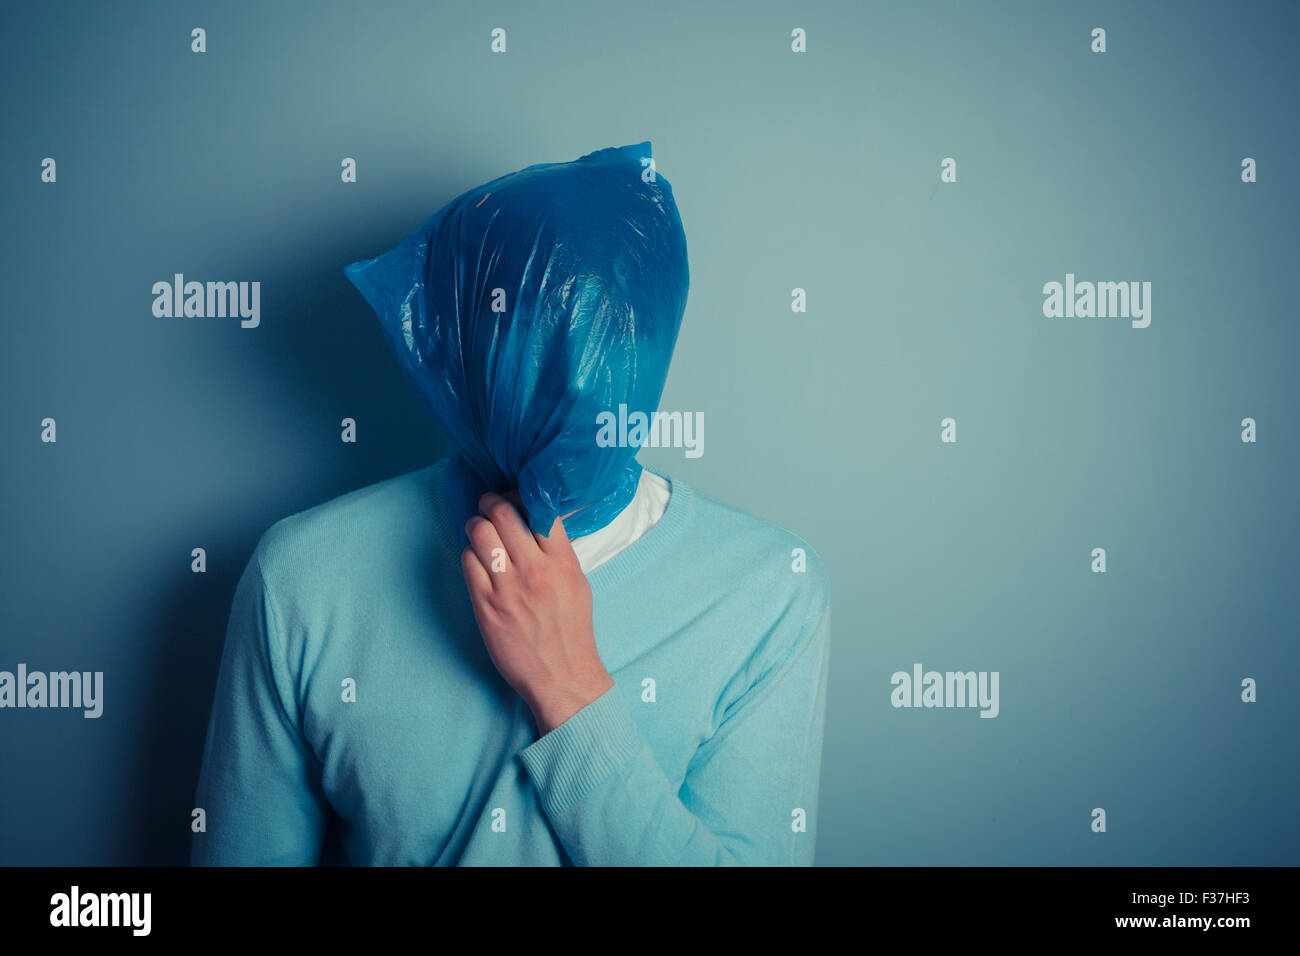 A man is wearing a plastic bag over his head - Stock Image